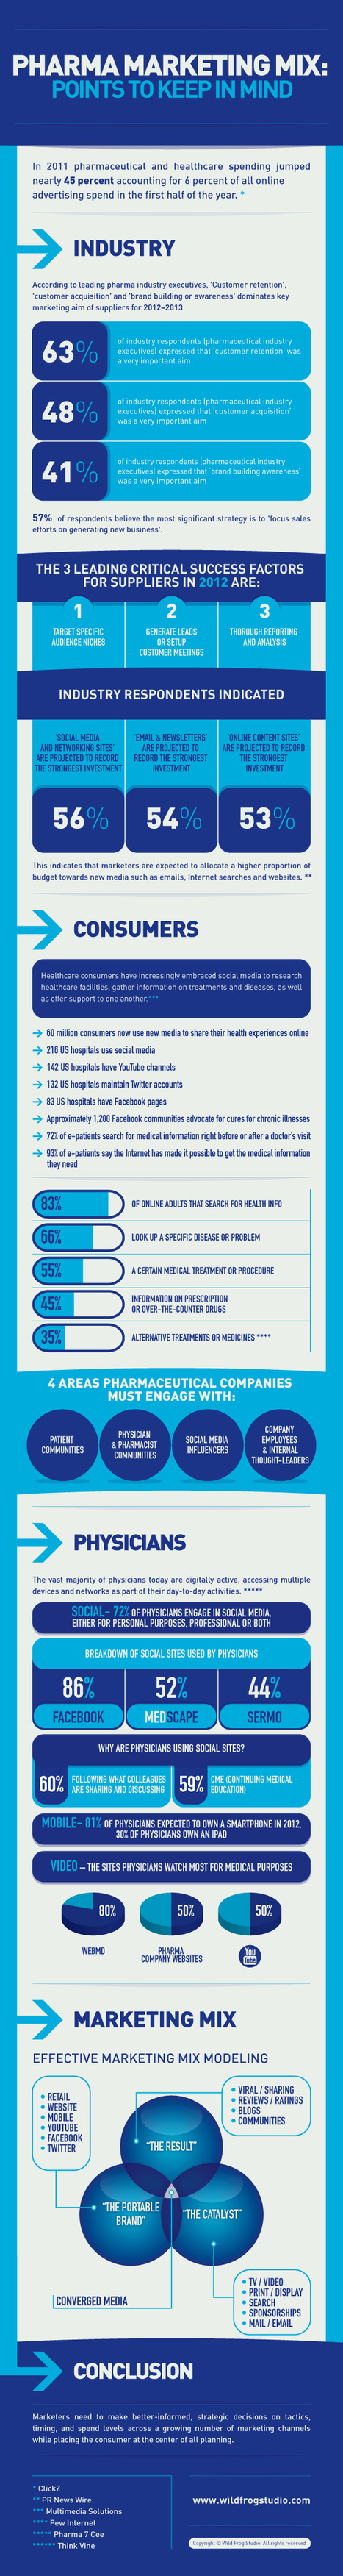 PHARMA MARKETING MIX #infography #hcsmeufr #hcsmeu #hcsm #hcsmeues | 9- PHARMA MULTI-CHANNEL MARKETING  by PHARMAGEEK | Scoop.it